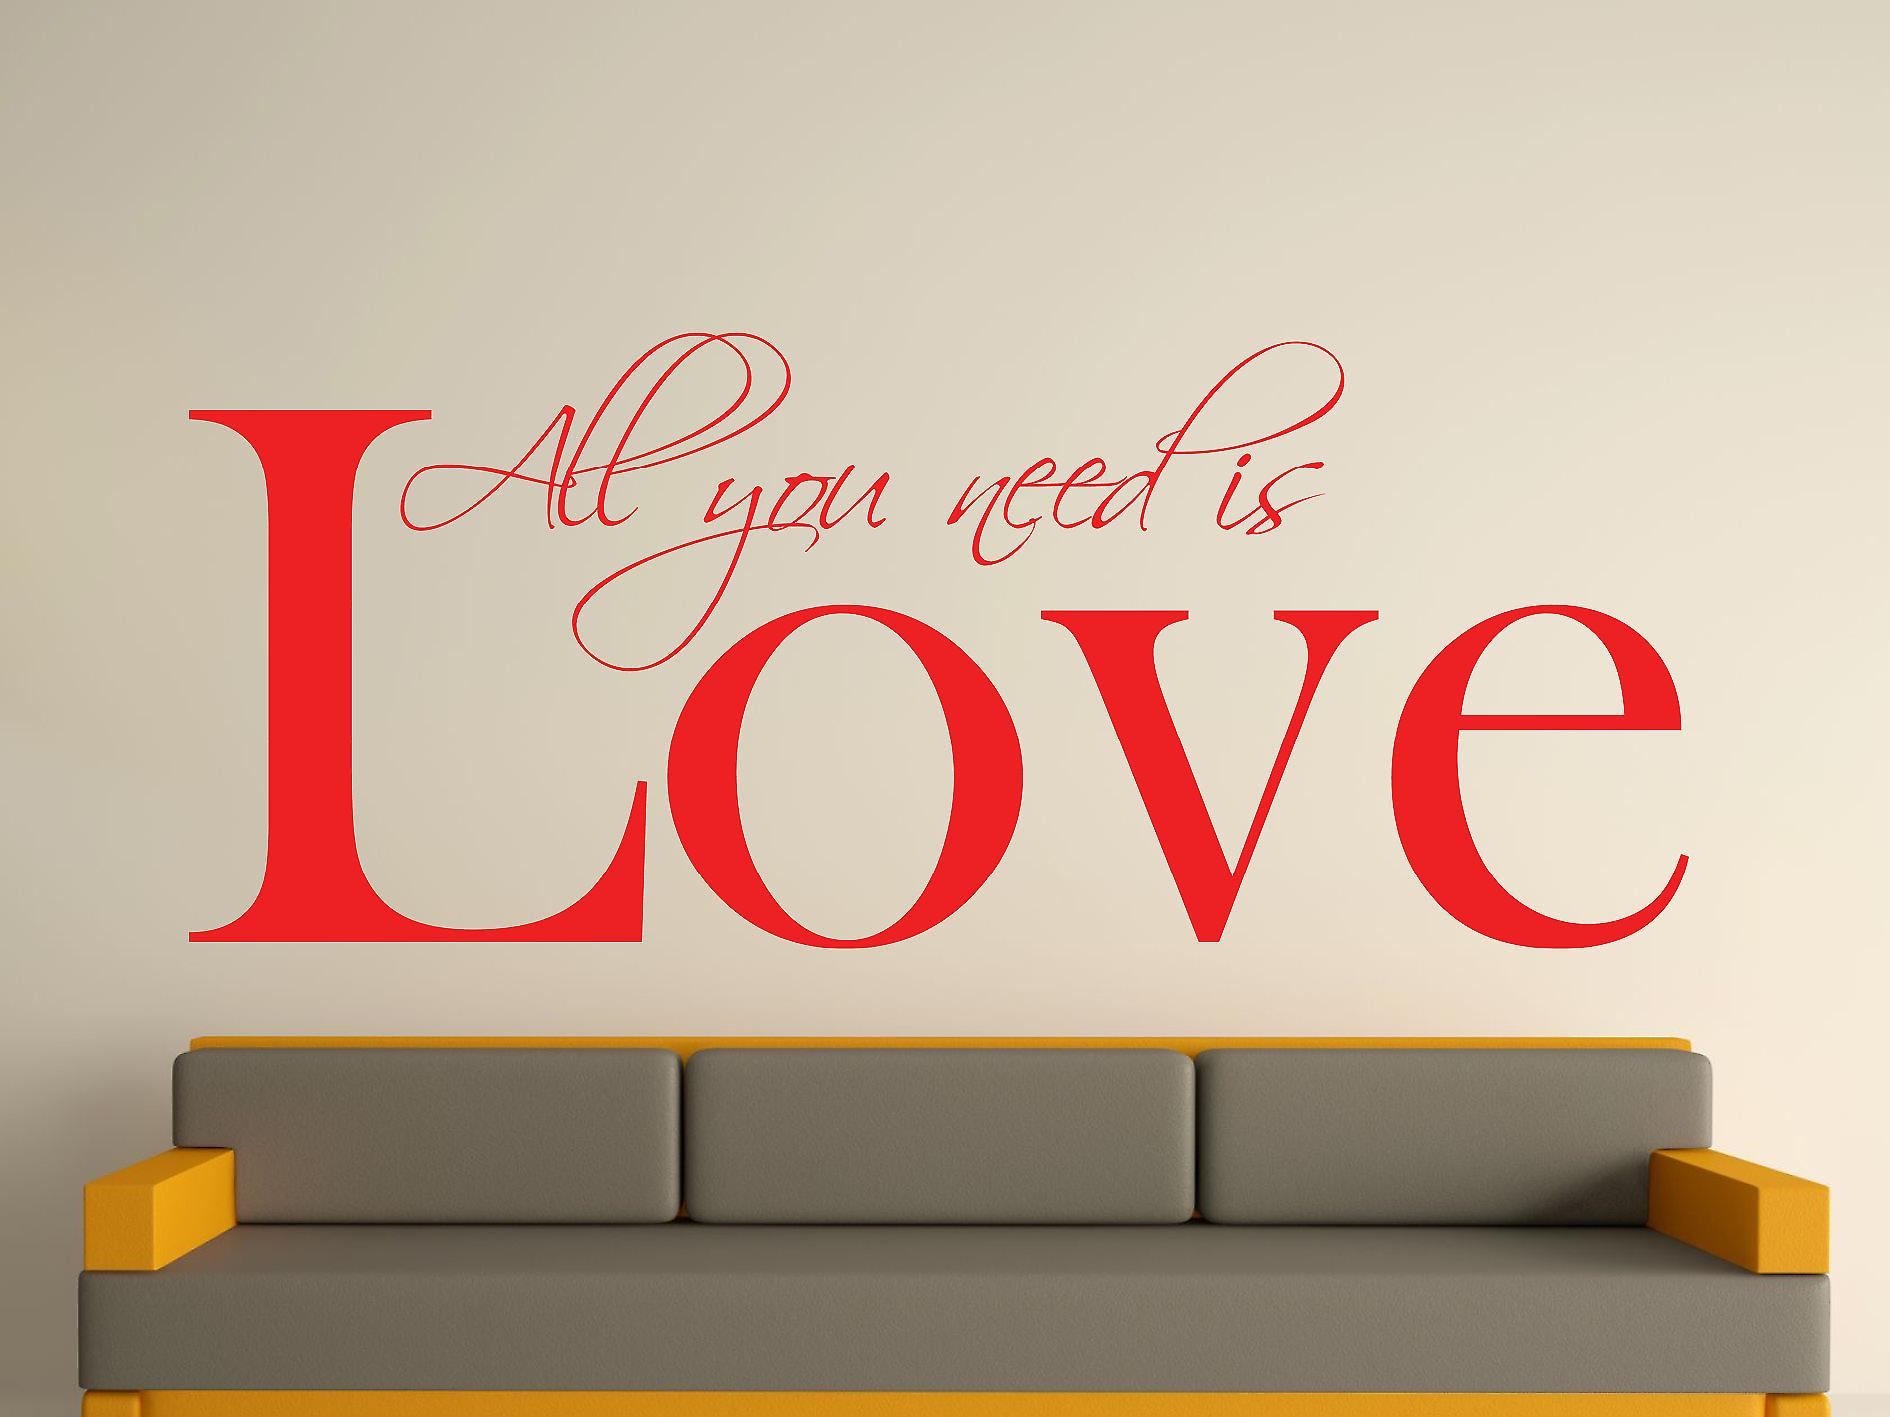 All You Need Wall Art Sticker - Tomato Red